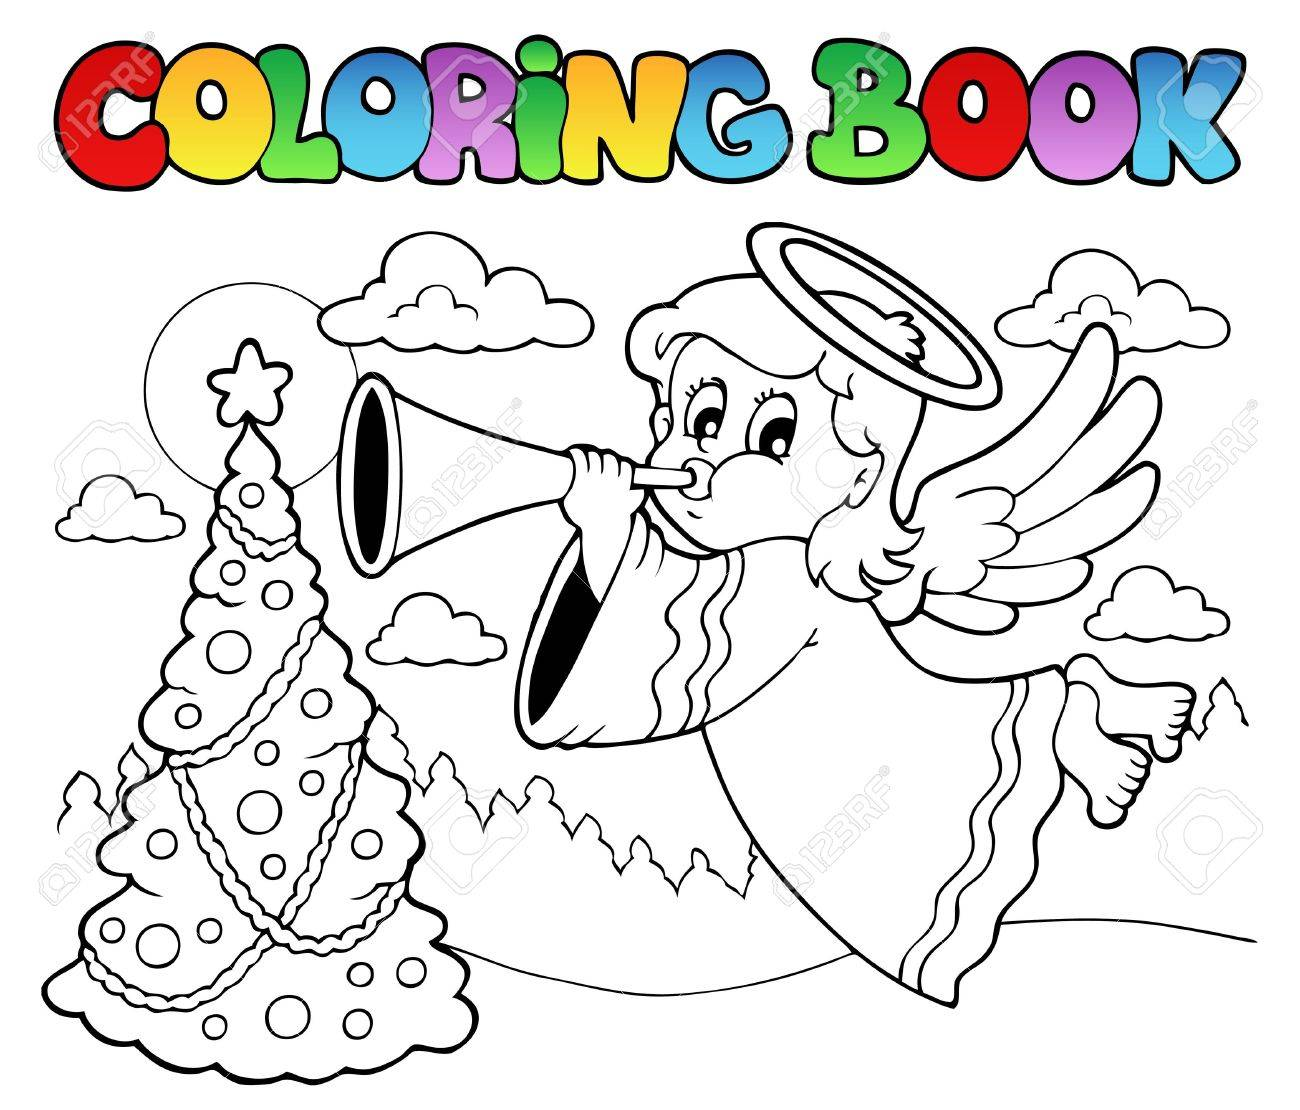 Coloring book image with angel 2 - vector illustration Stock Vector - 16503843